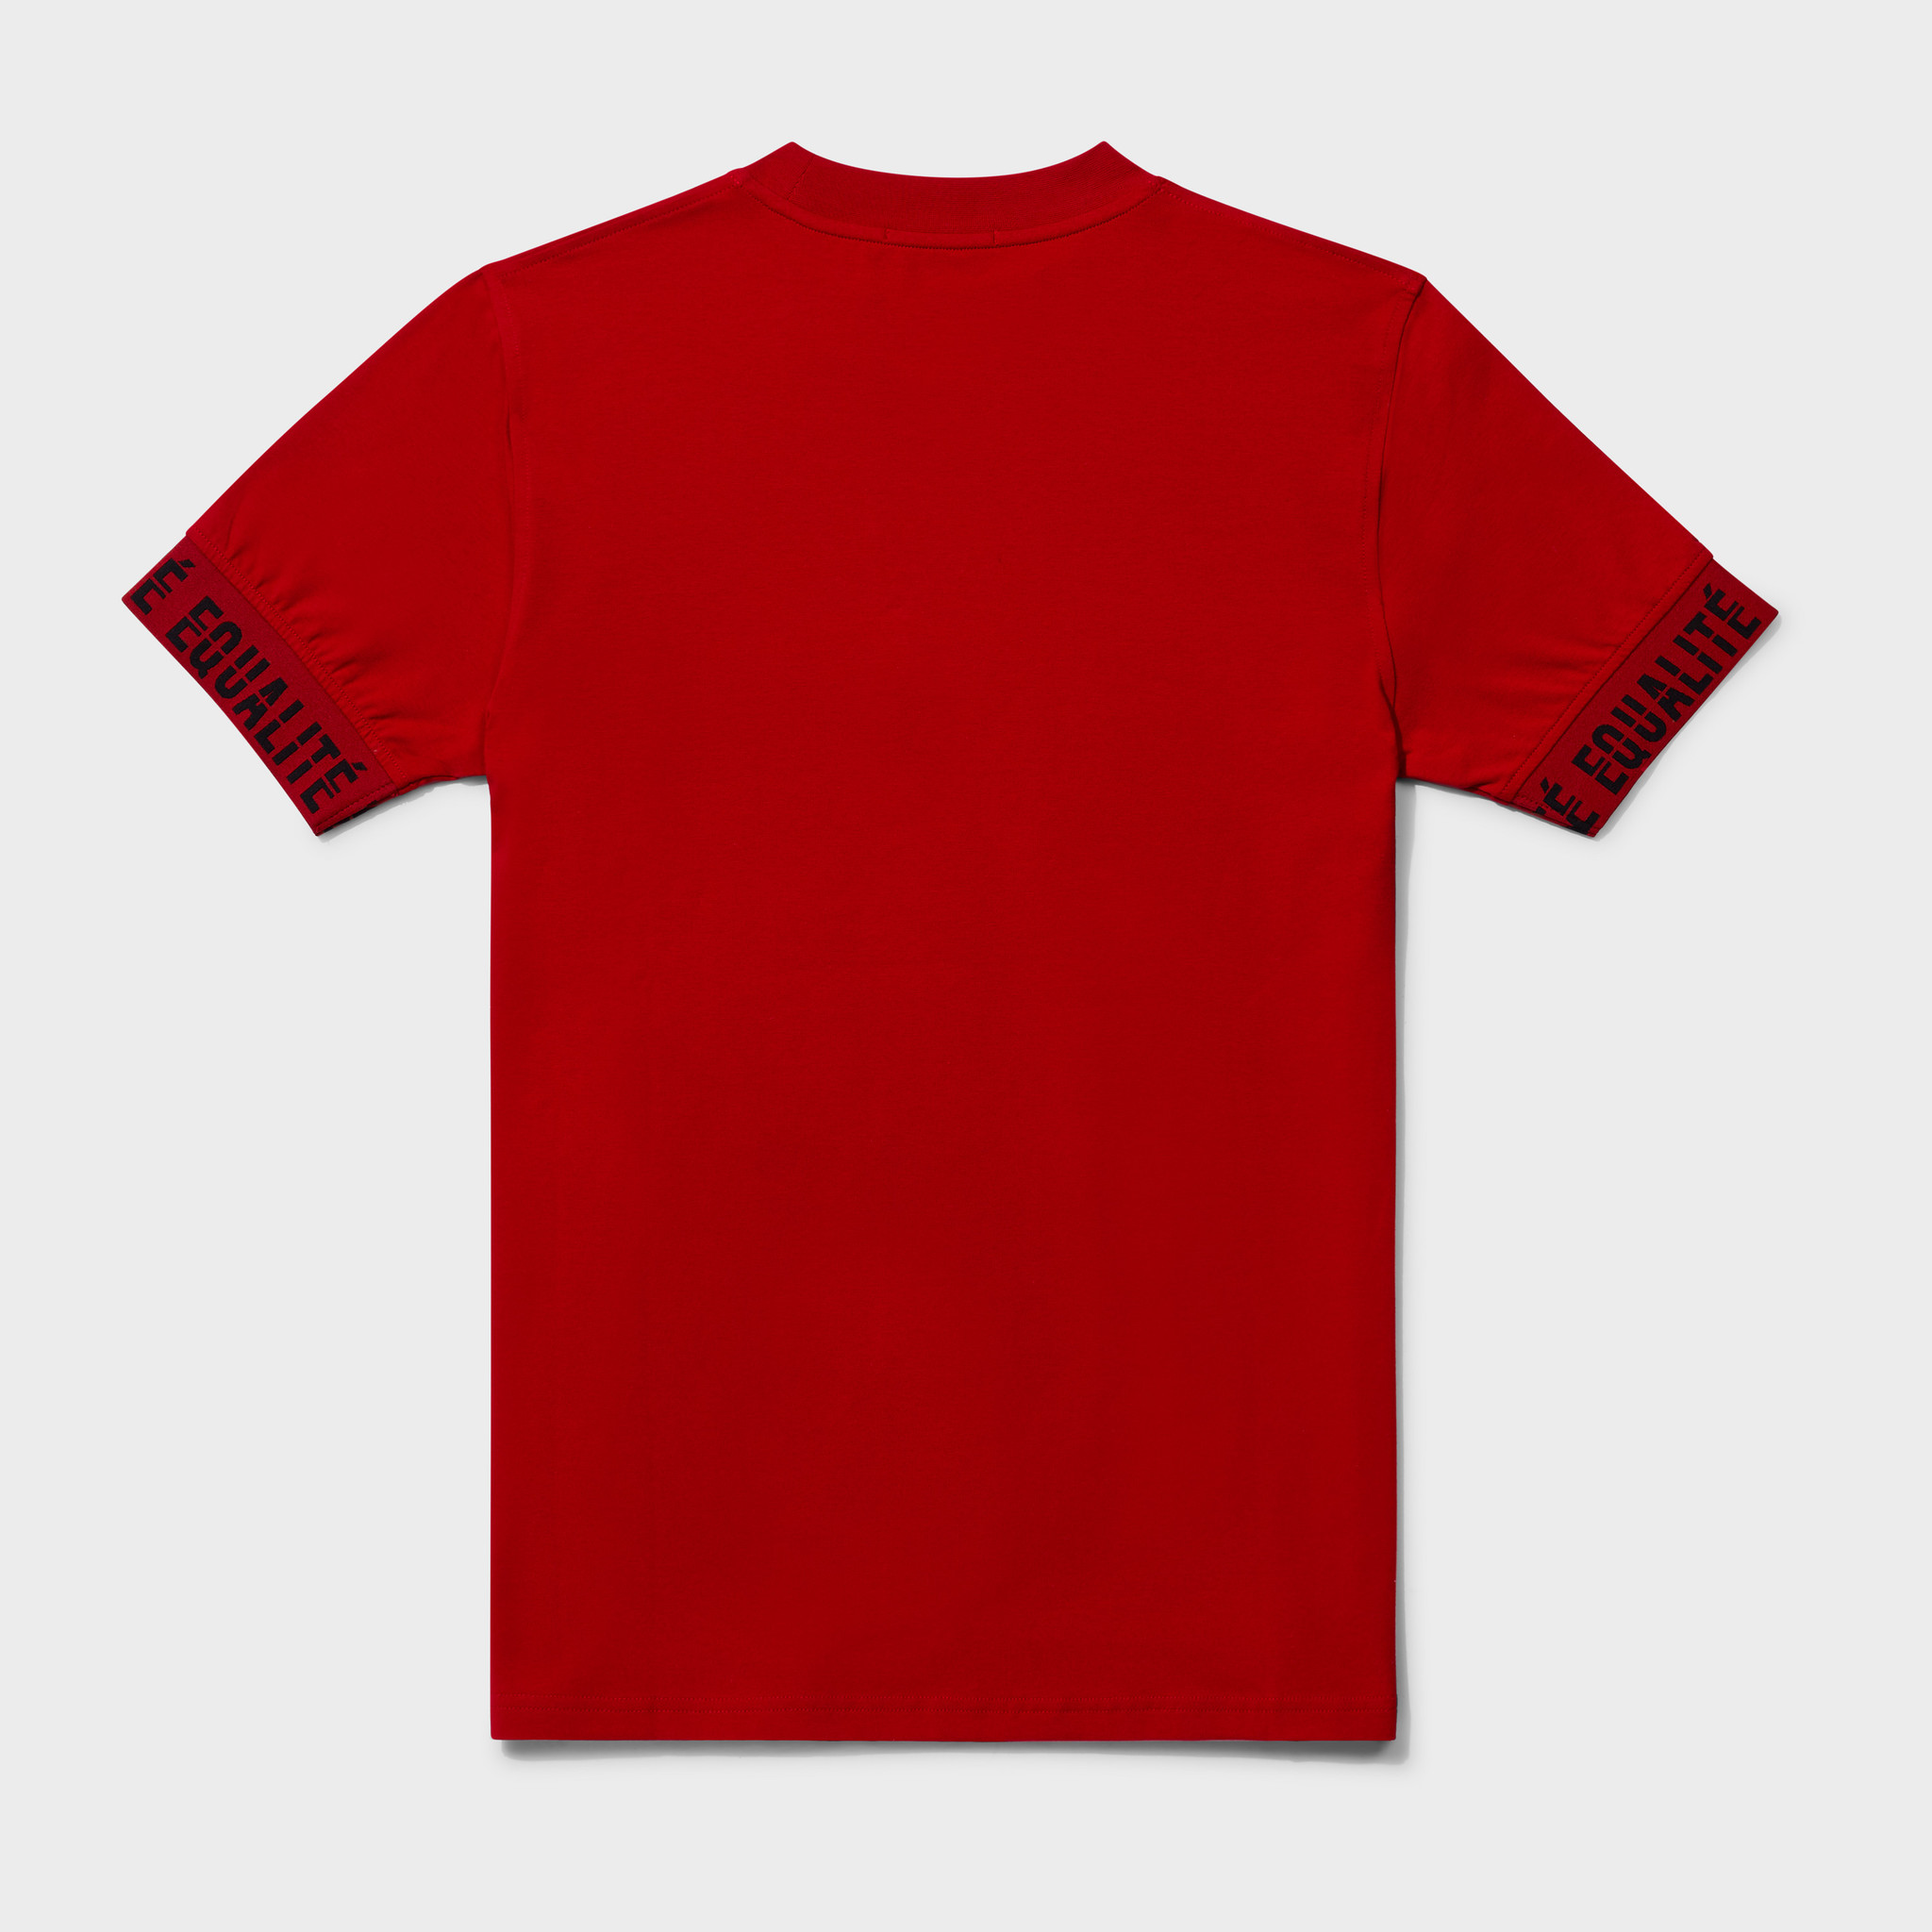 BAND TEE RED & BLACK-2